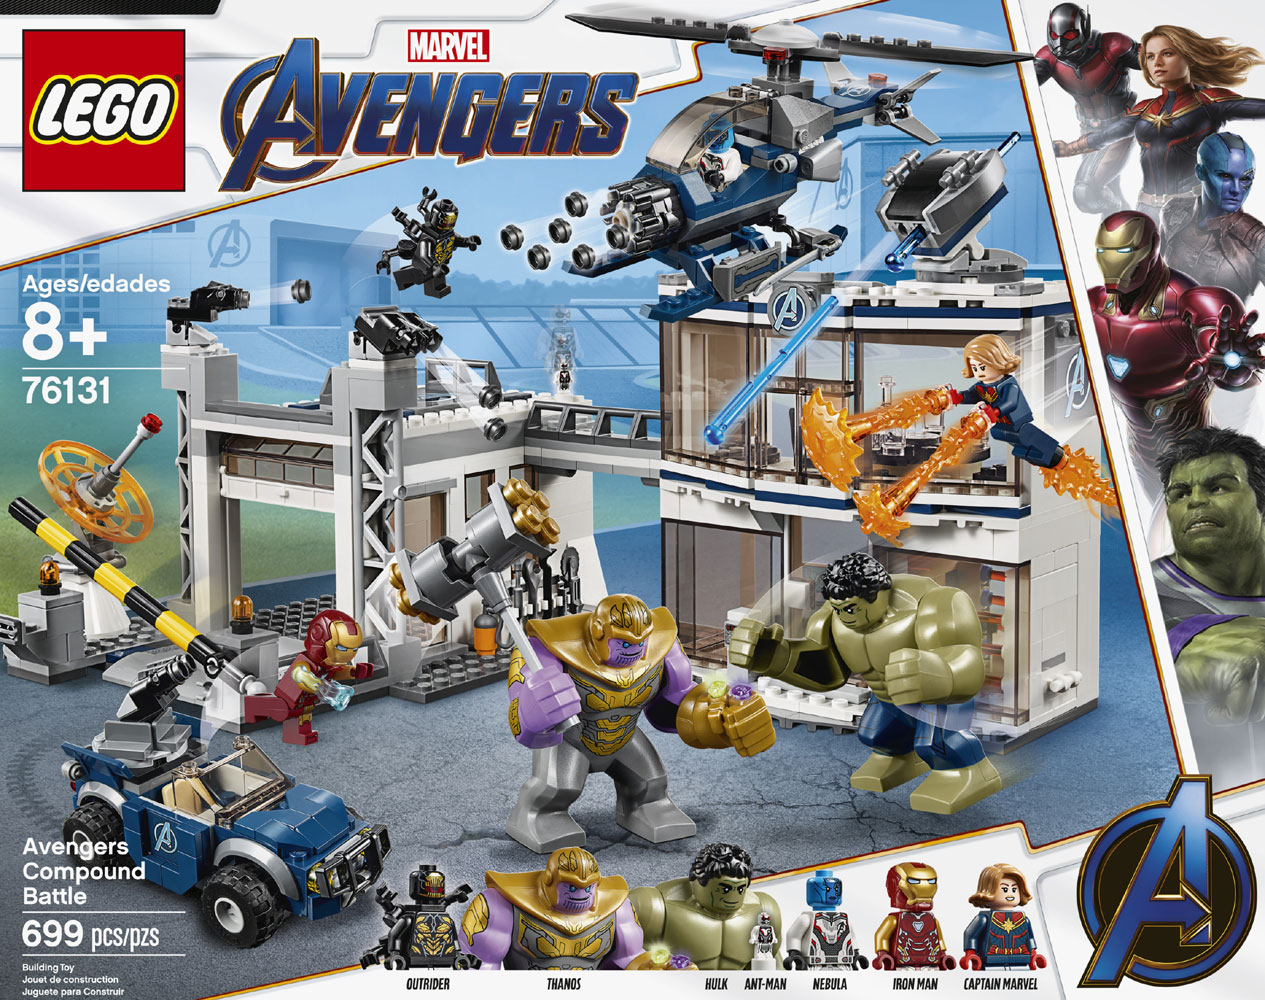 Lego Super Heroes Marvel Avengers Compound Battle 76131 Toys R Us Canada